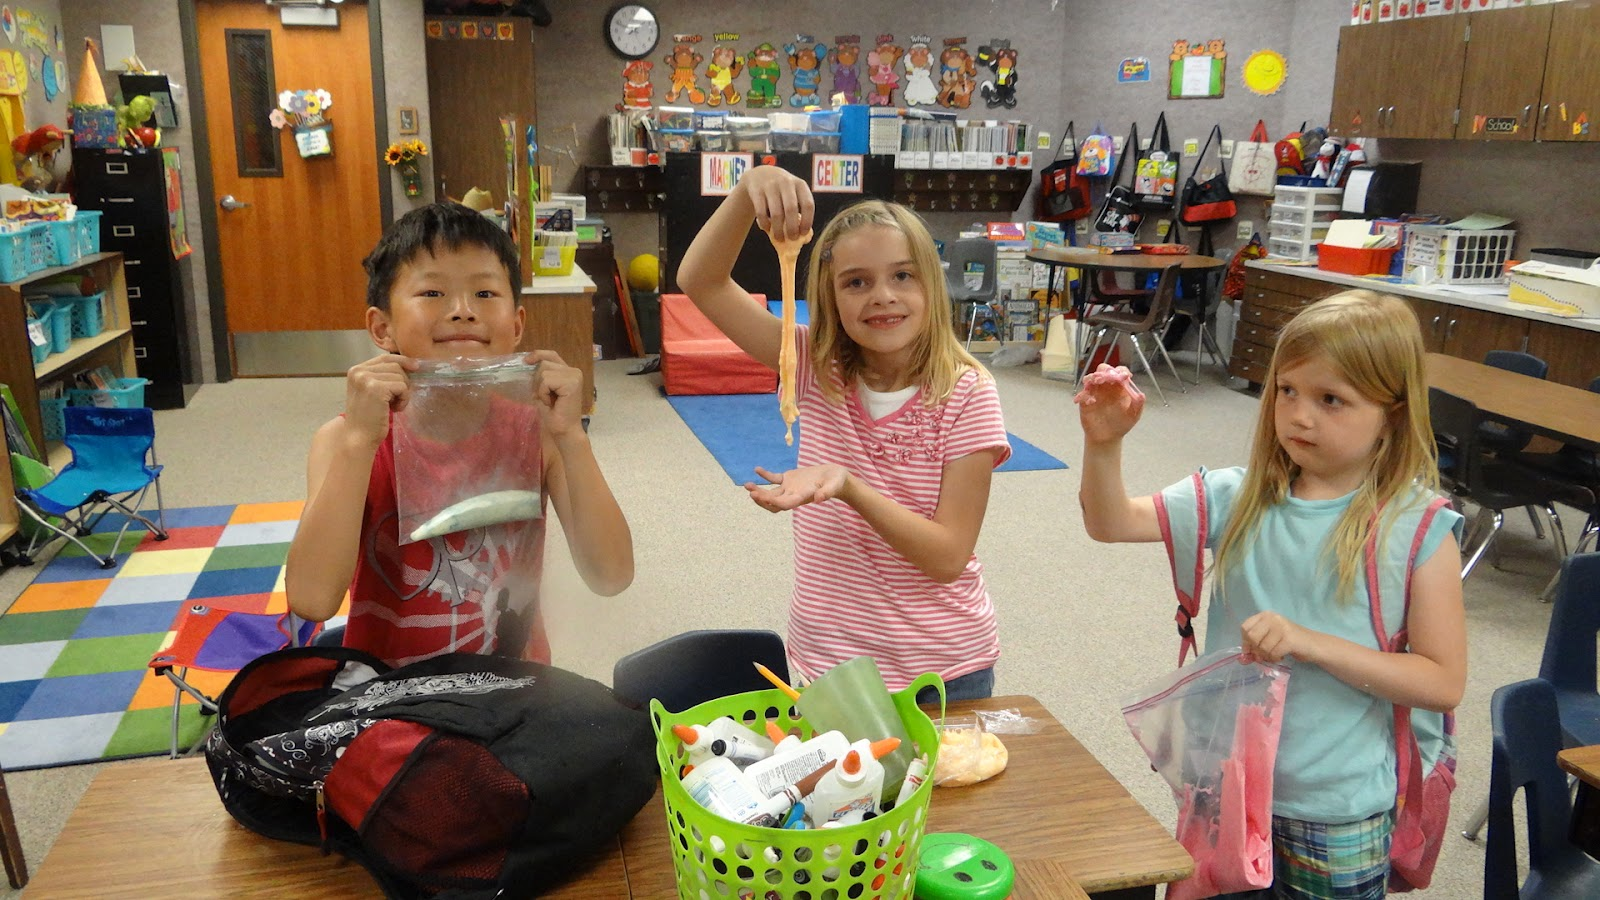 Patties classroom slime recipe from glue and borax we made pink orange green and yellow slime ccuart Gallery